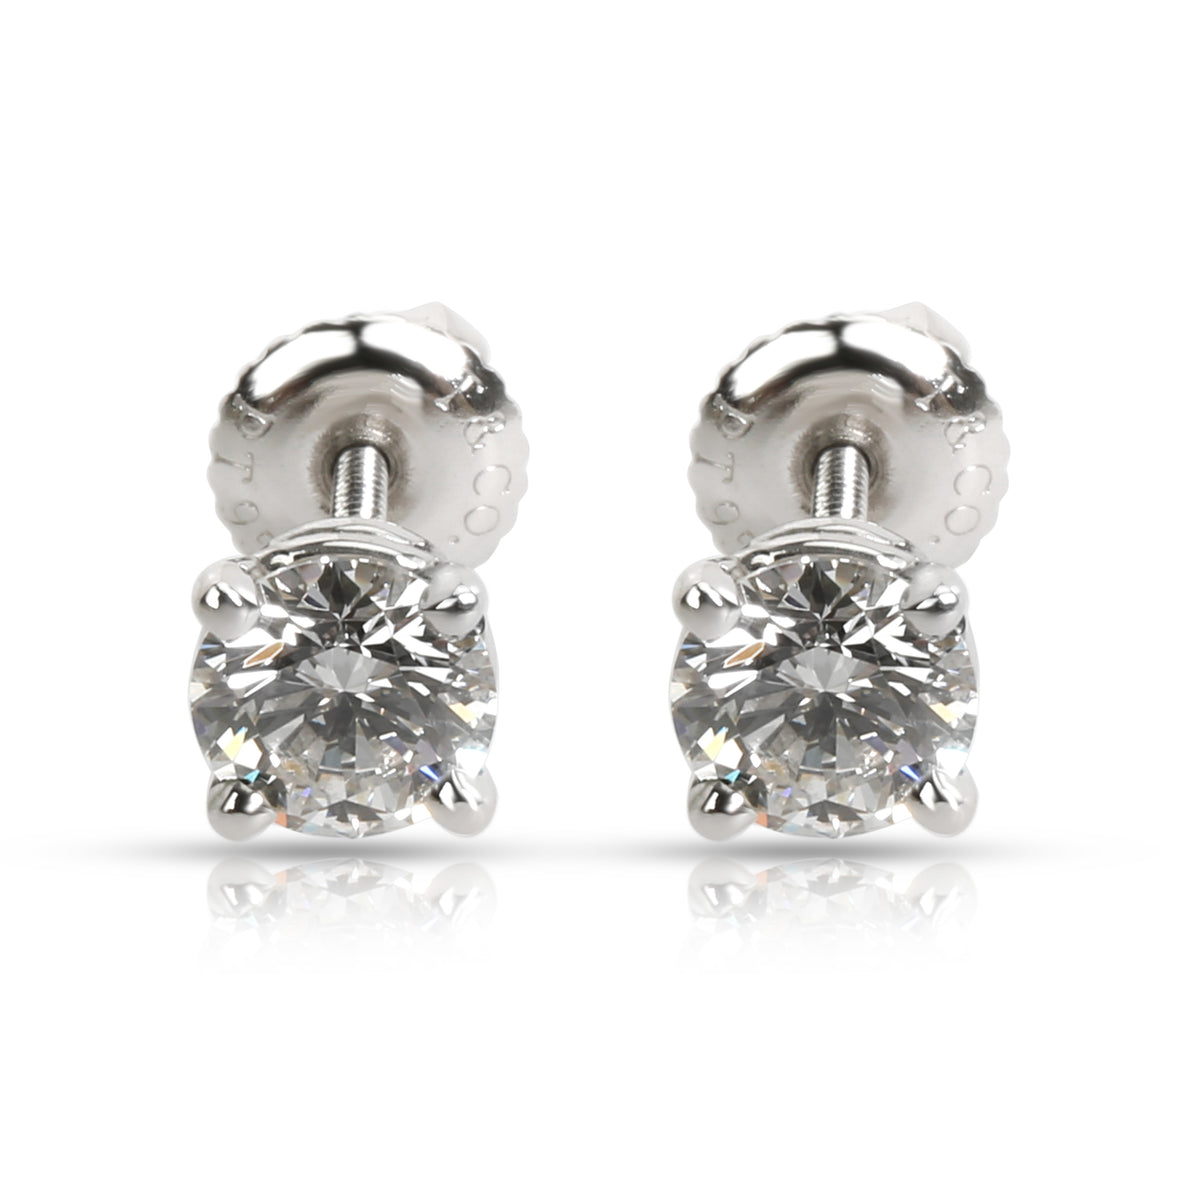 Tiffany & Co. Diamond Stud Earring in  Platinum 0.93 CTW